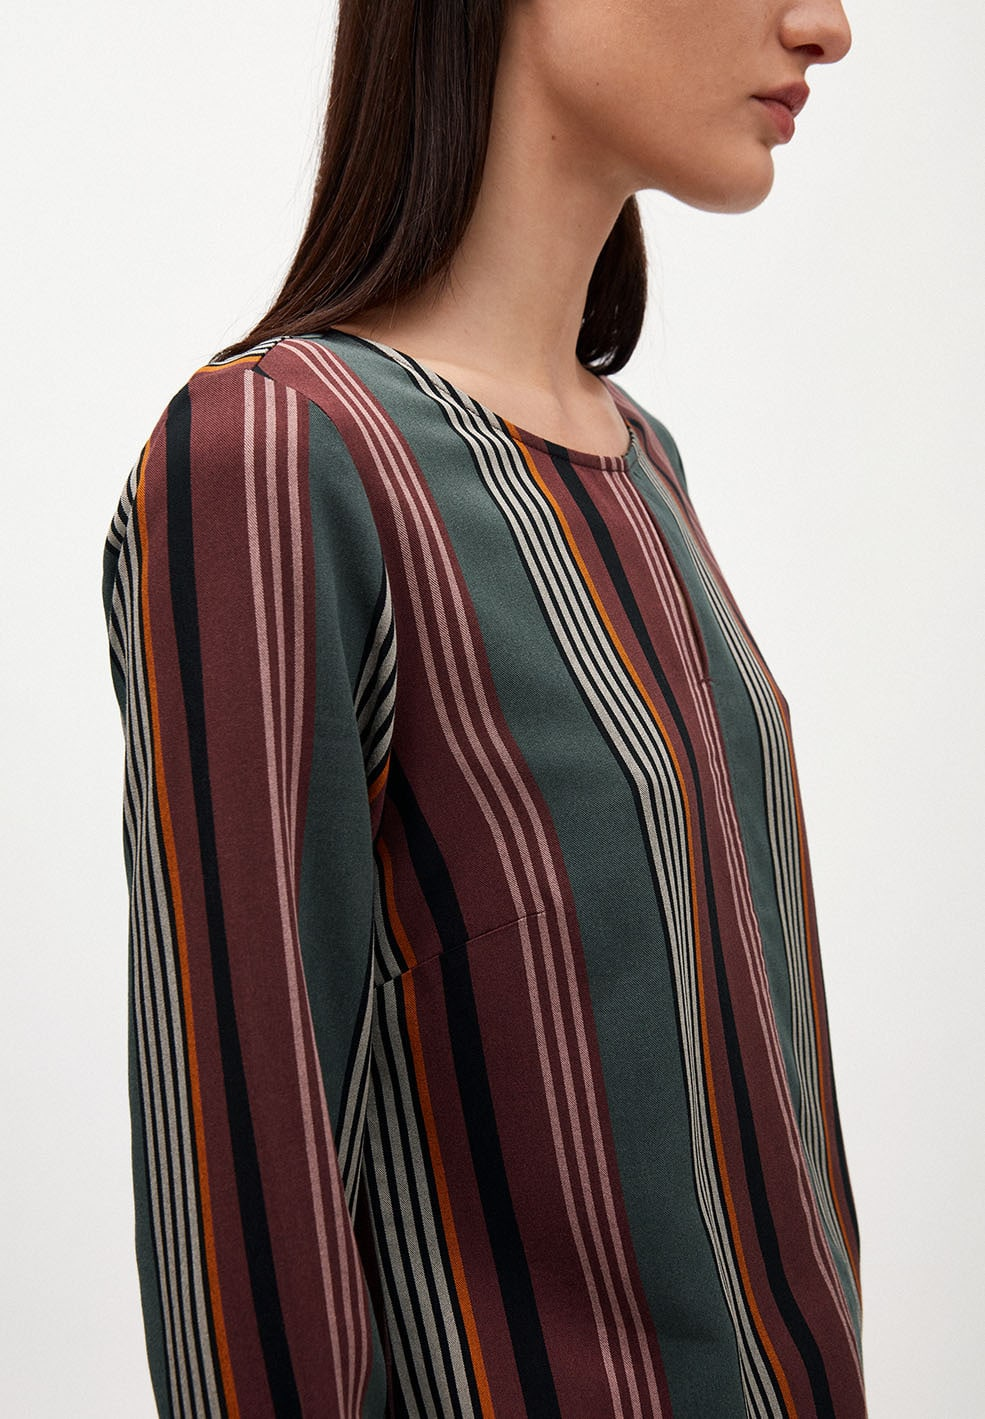 VENDLAA CLUSTERED STRIPES